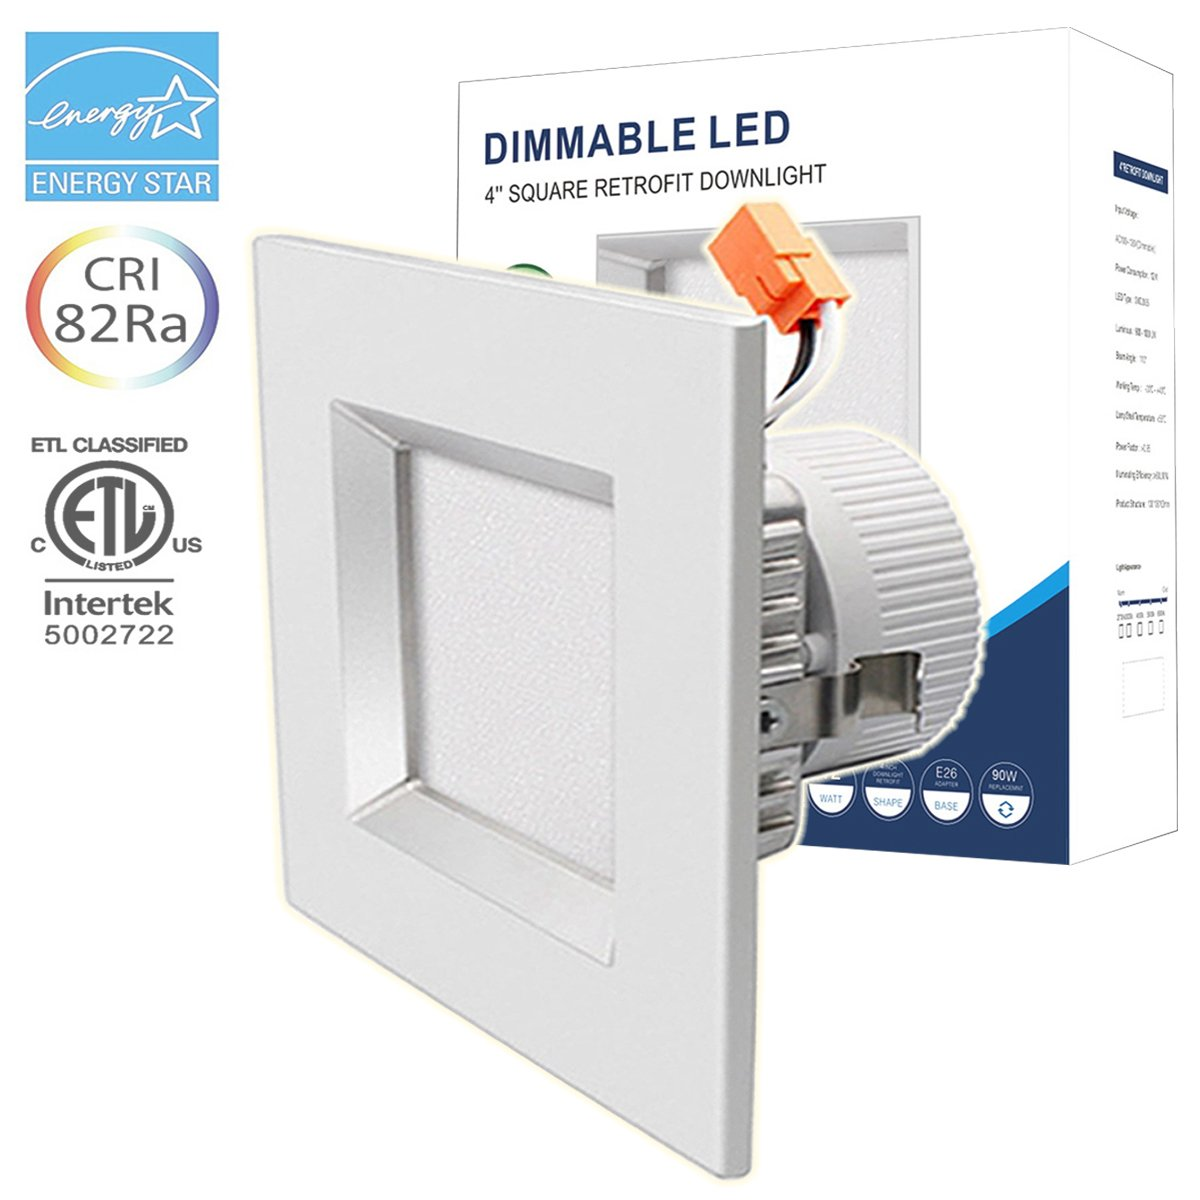 Recessed Lighting Square LED Ceiling Downlight Dimmable Flat Light 4 Inch 12W Retrofit Fixture ELT 3000K Warm White Energy Star Long Lifespan 50000 Hours